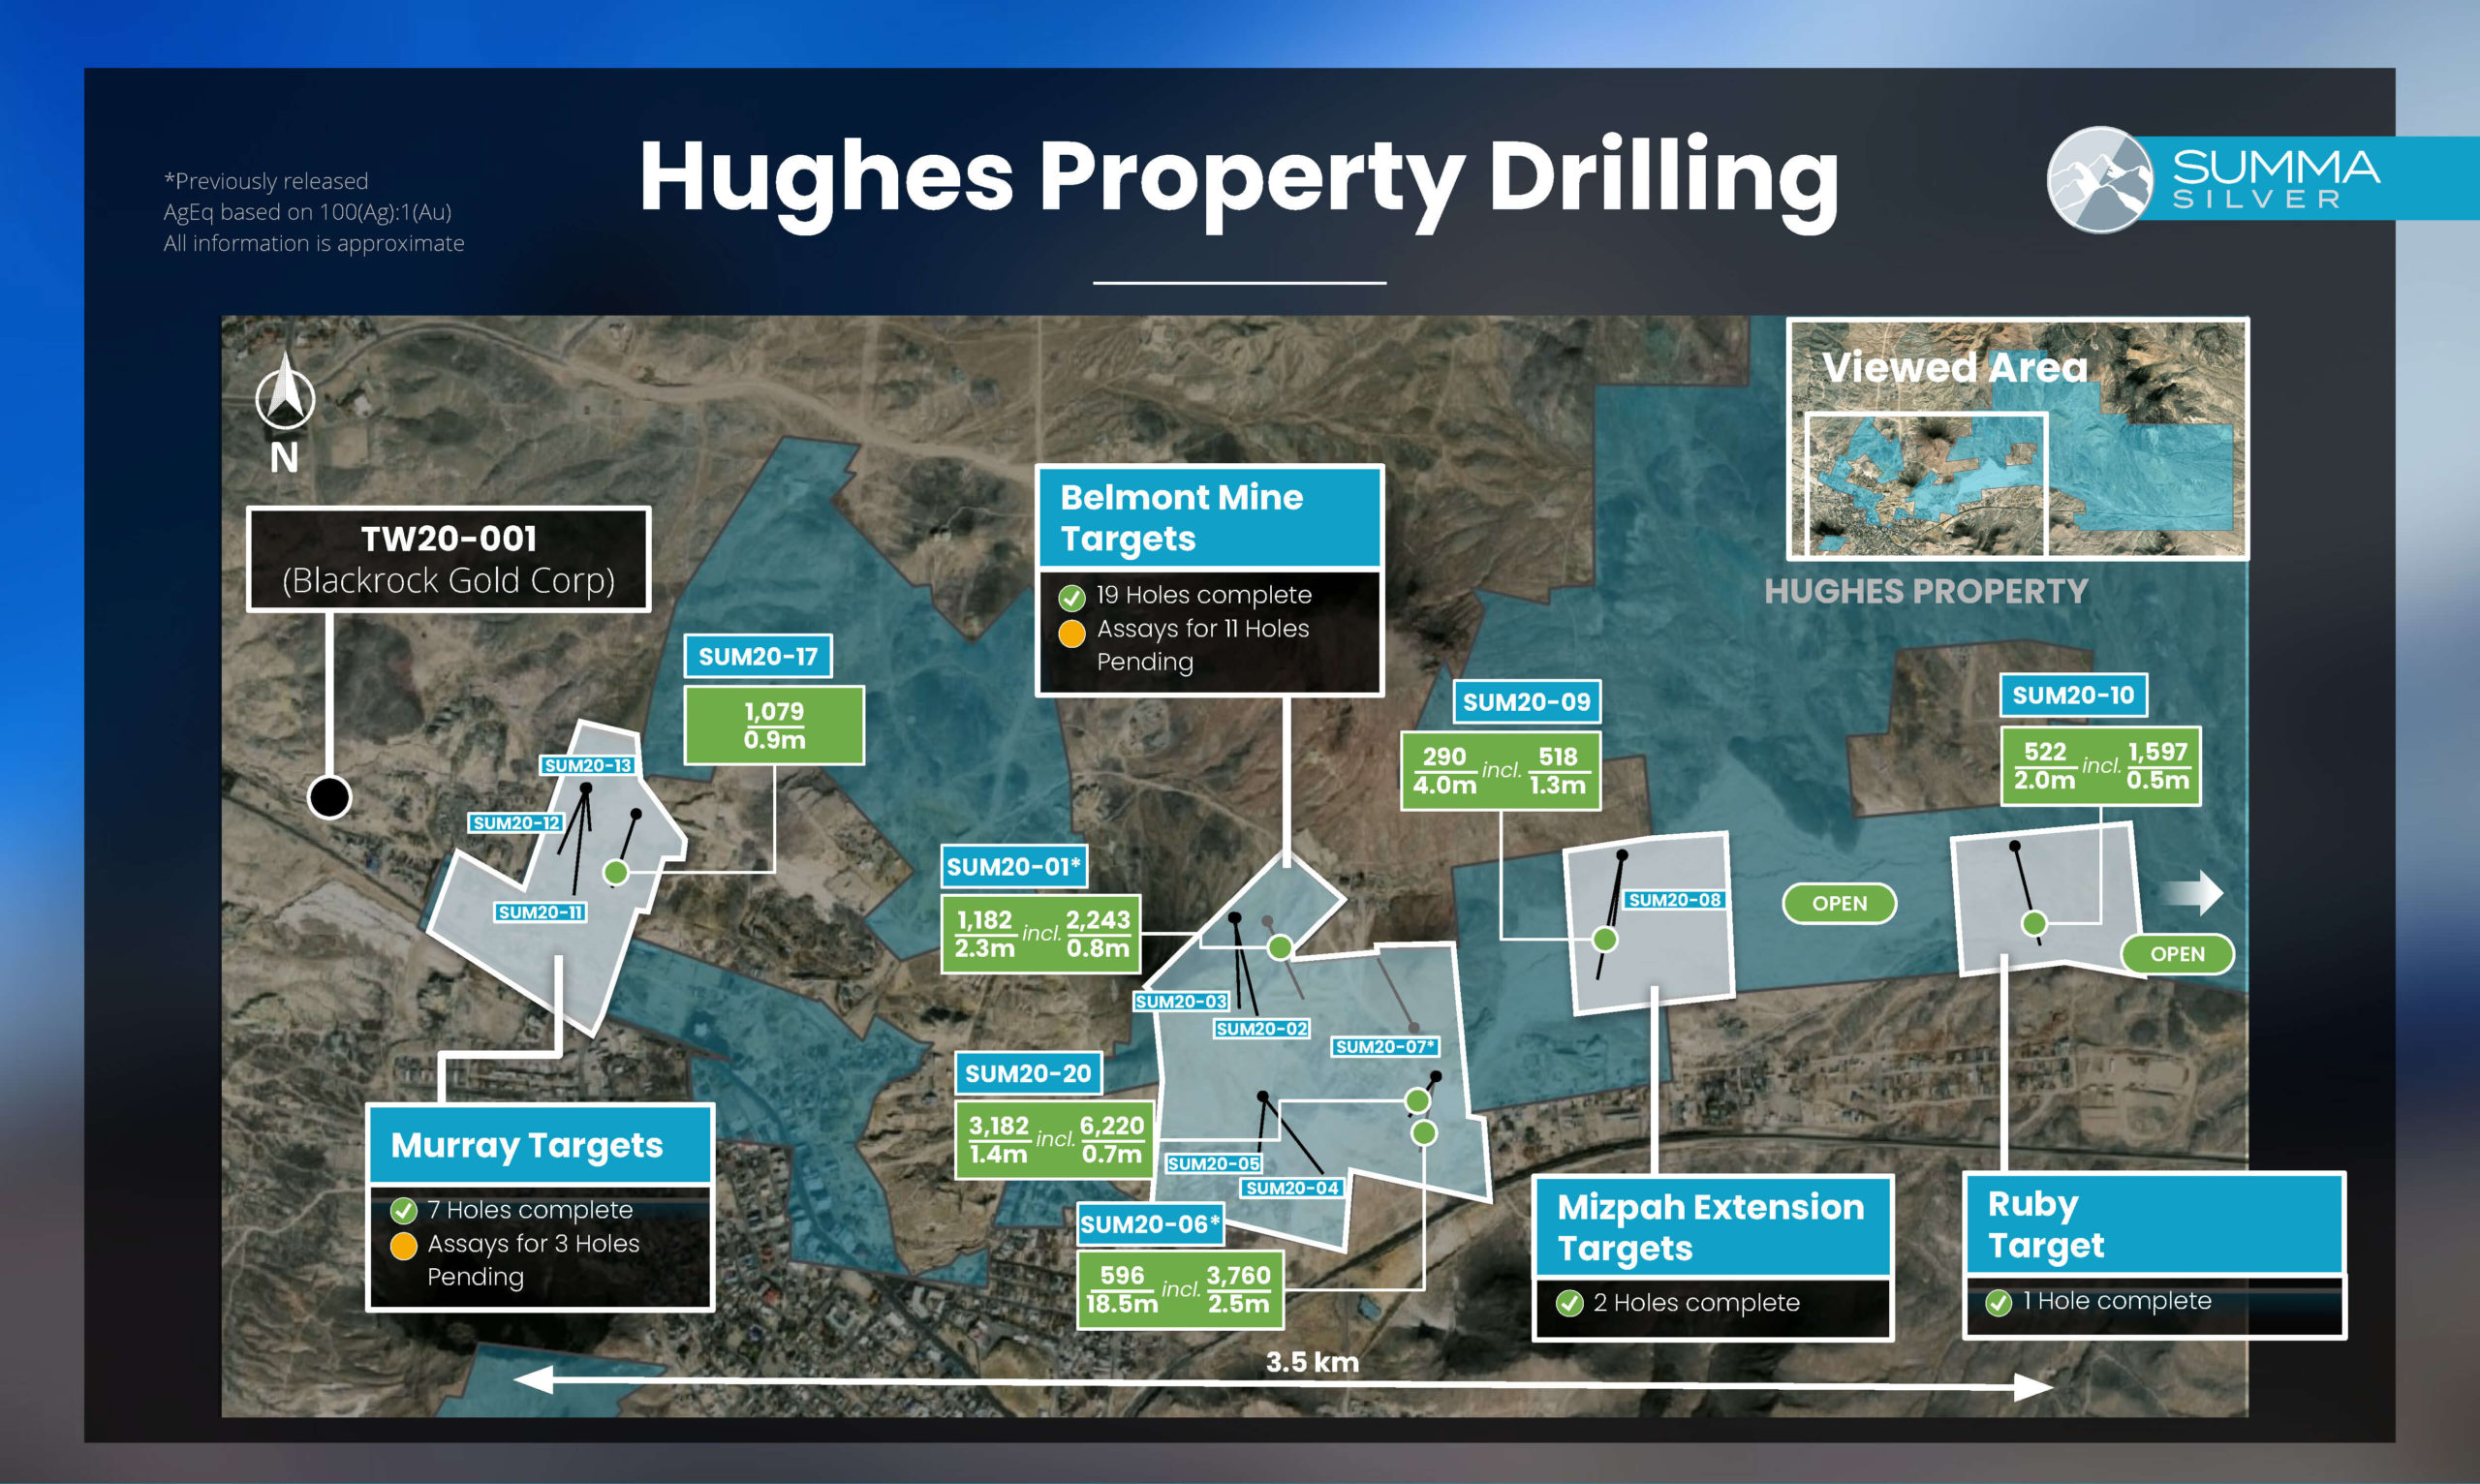 hughes property drilling overview